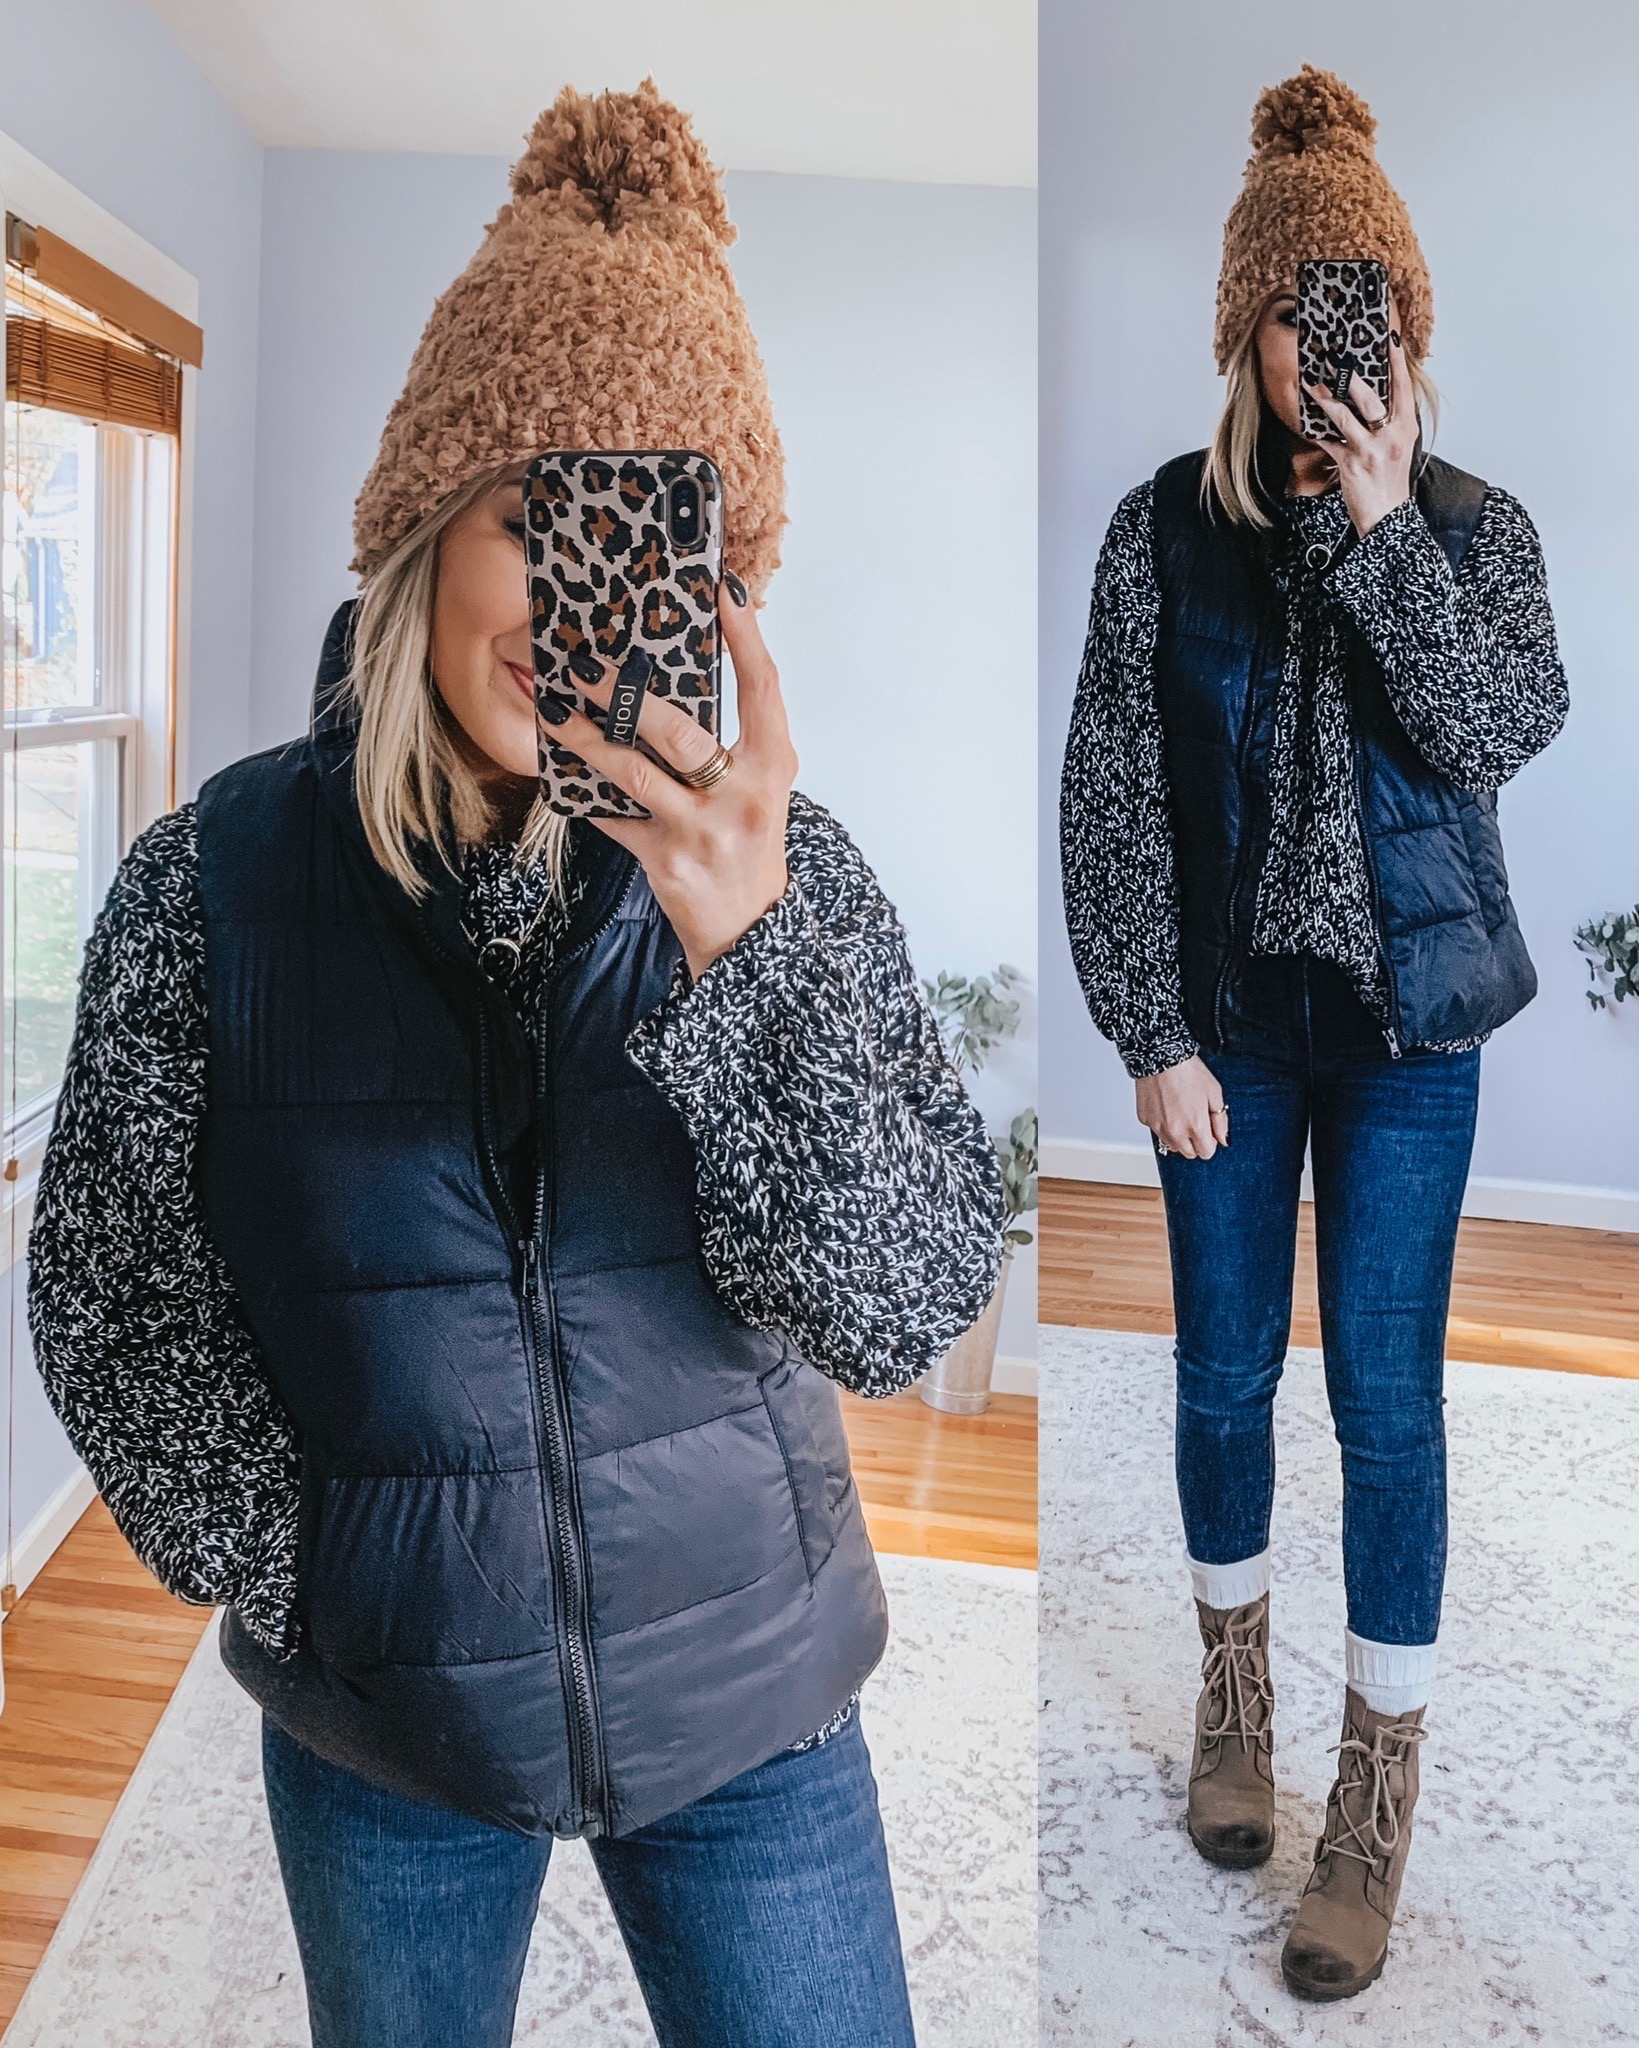 Affordable Winter Coats + Accessories | Style Blogger Lauren Meyer shares Affordable Winter Coats + Accessories